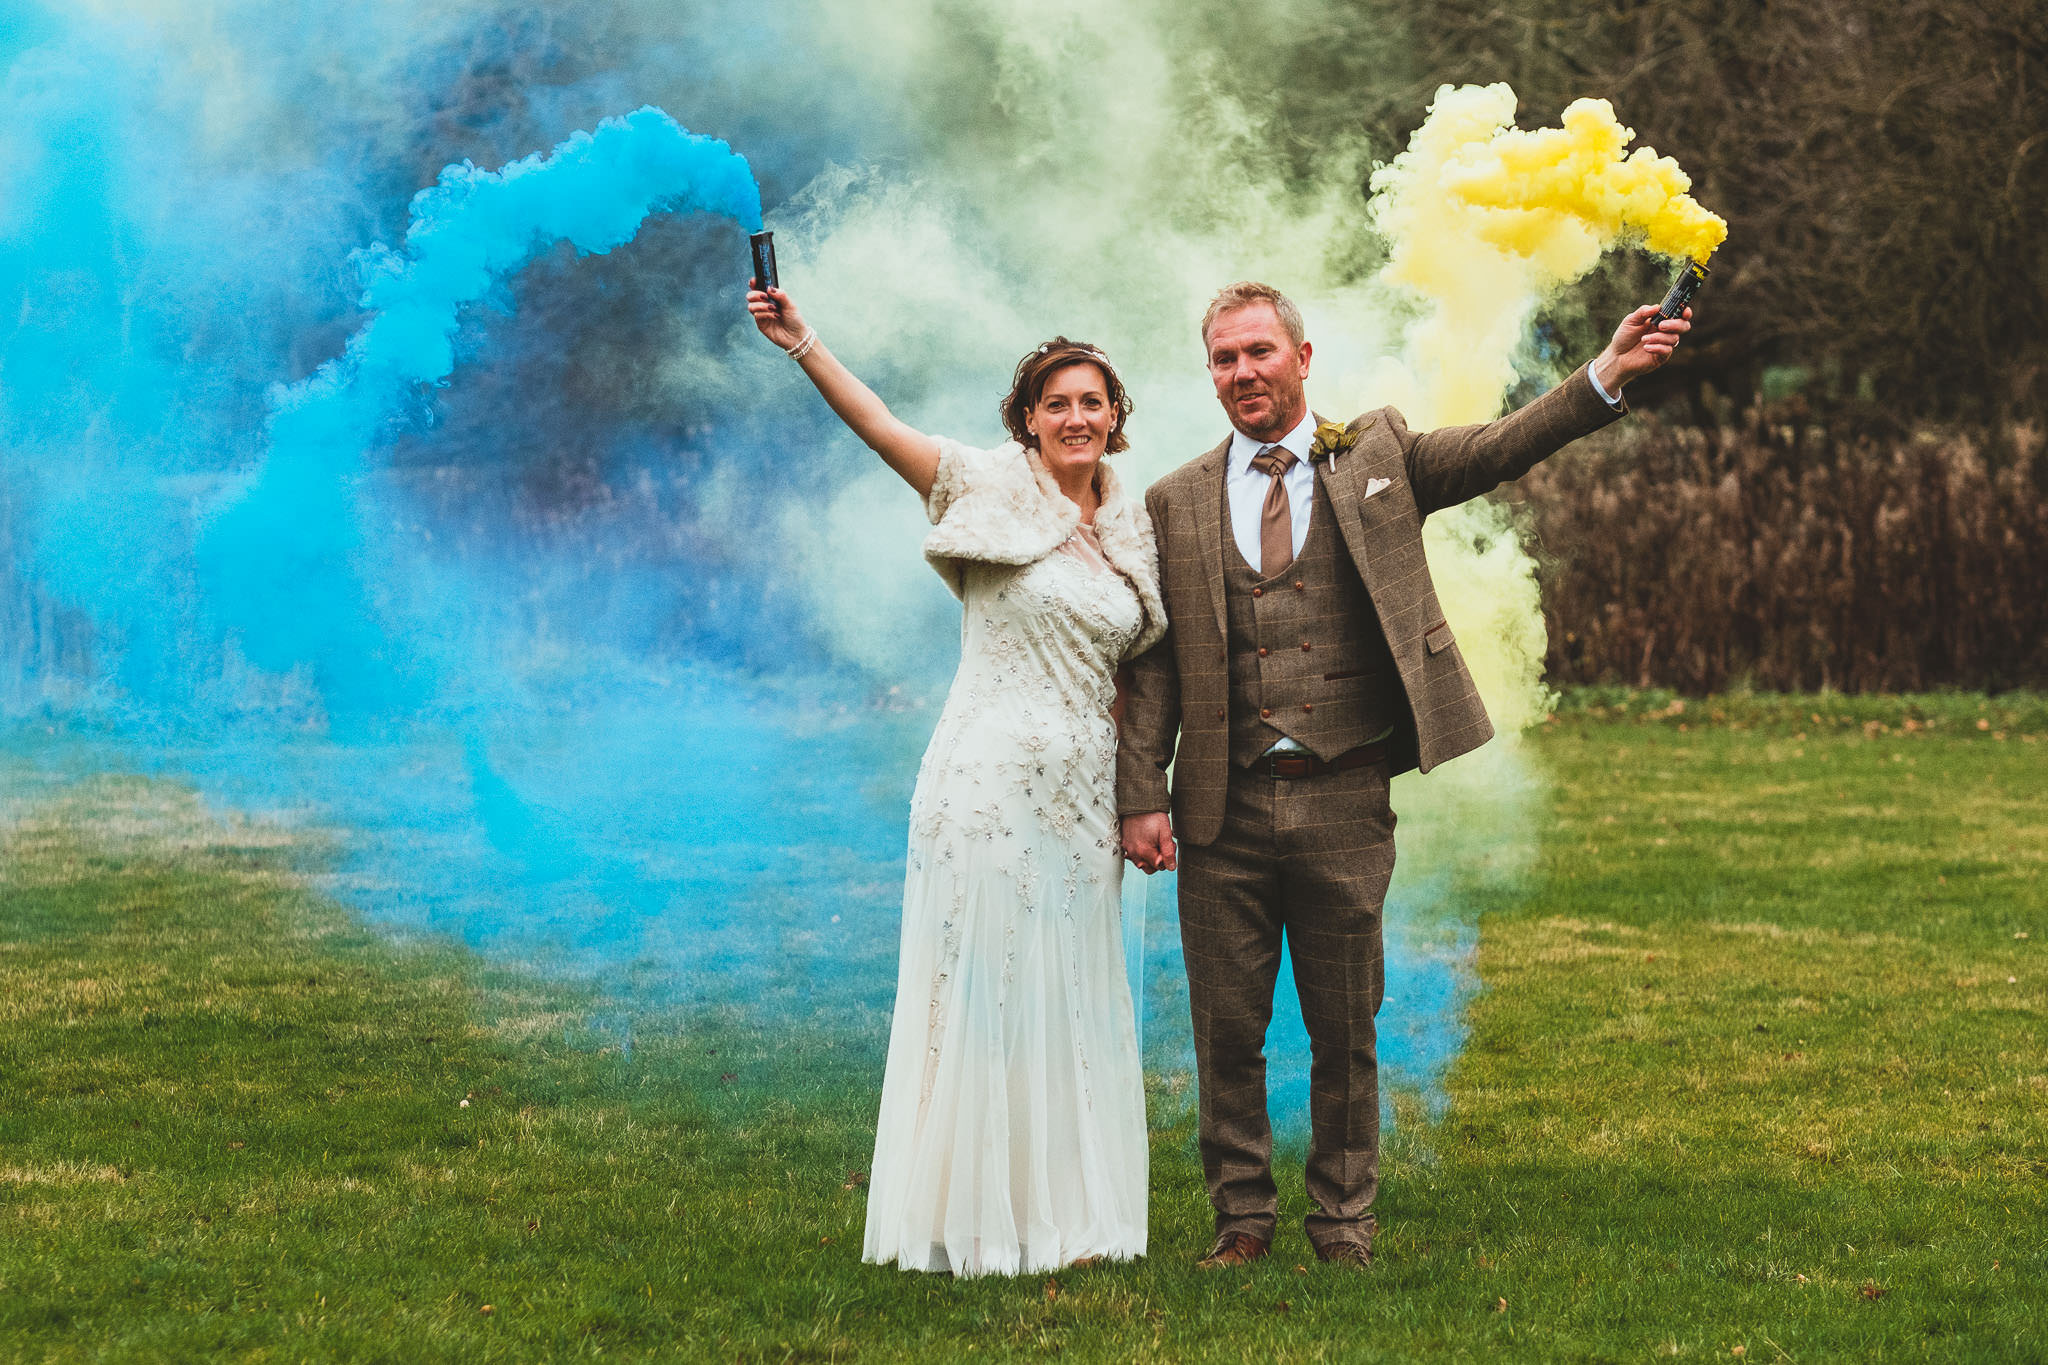 Smoke bombs at Angela & Dave's wedding at The Parlour in Blagdon, Northumberland